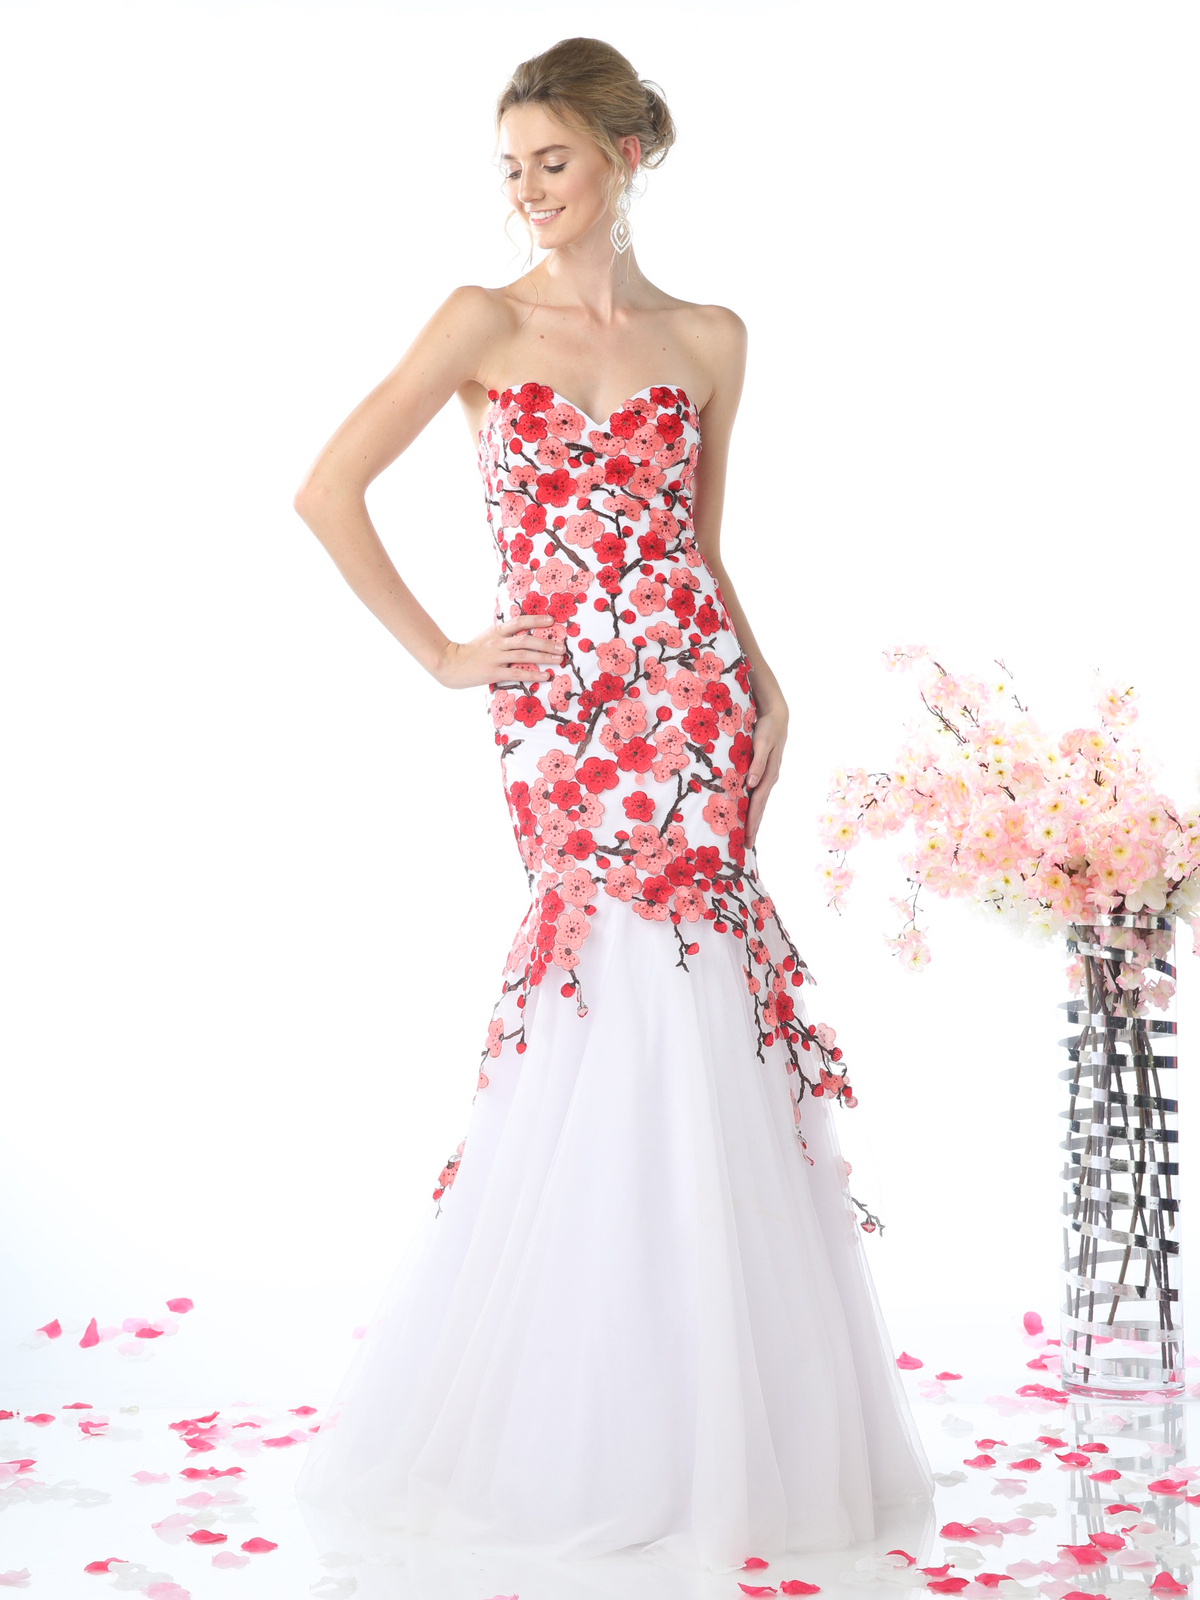 Sweetheart Trumpet Prom Evening Gown with Embroidery | Sung ...